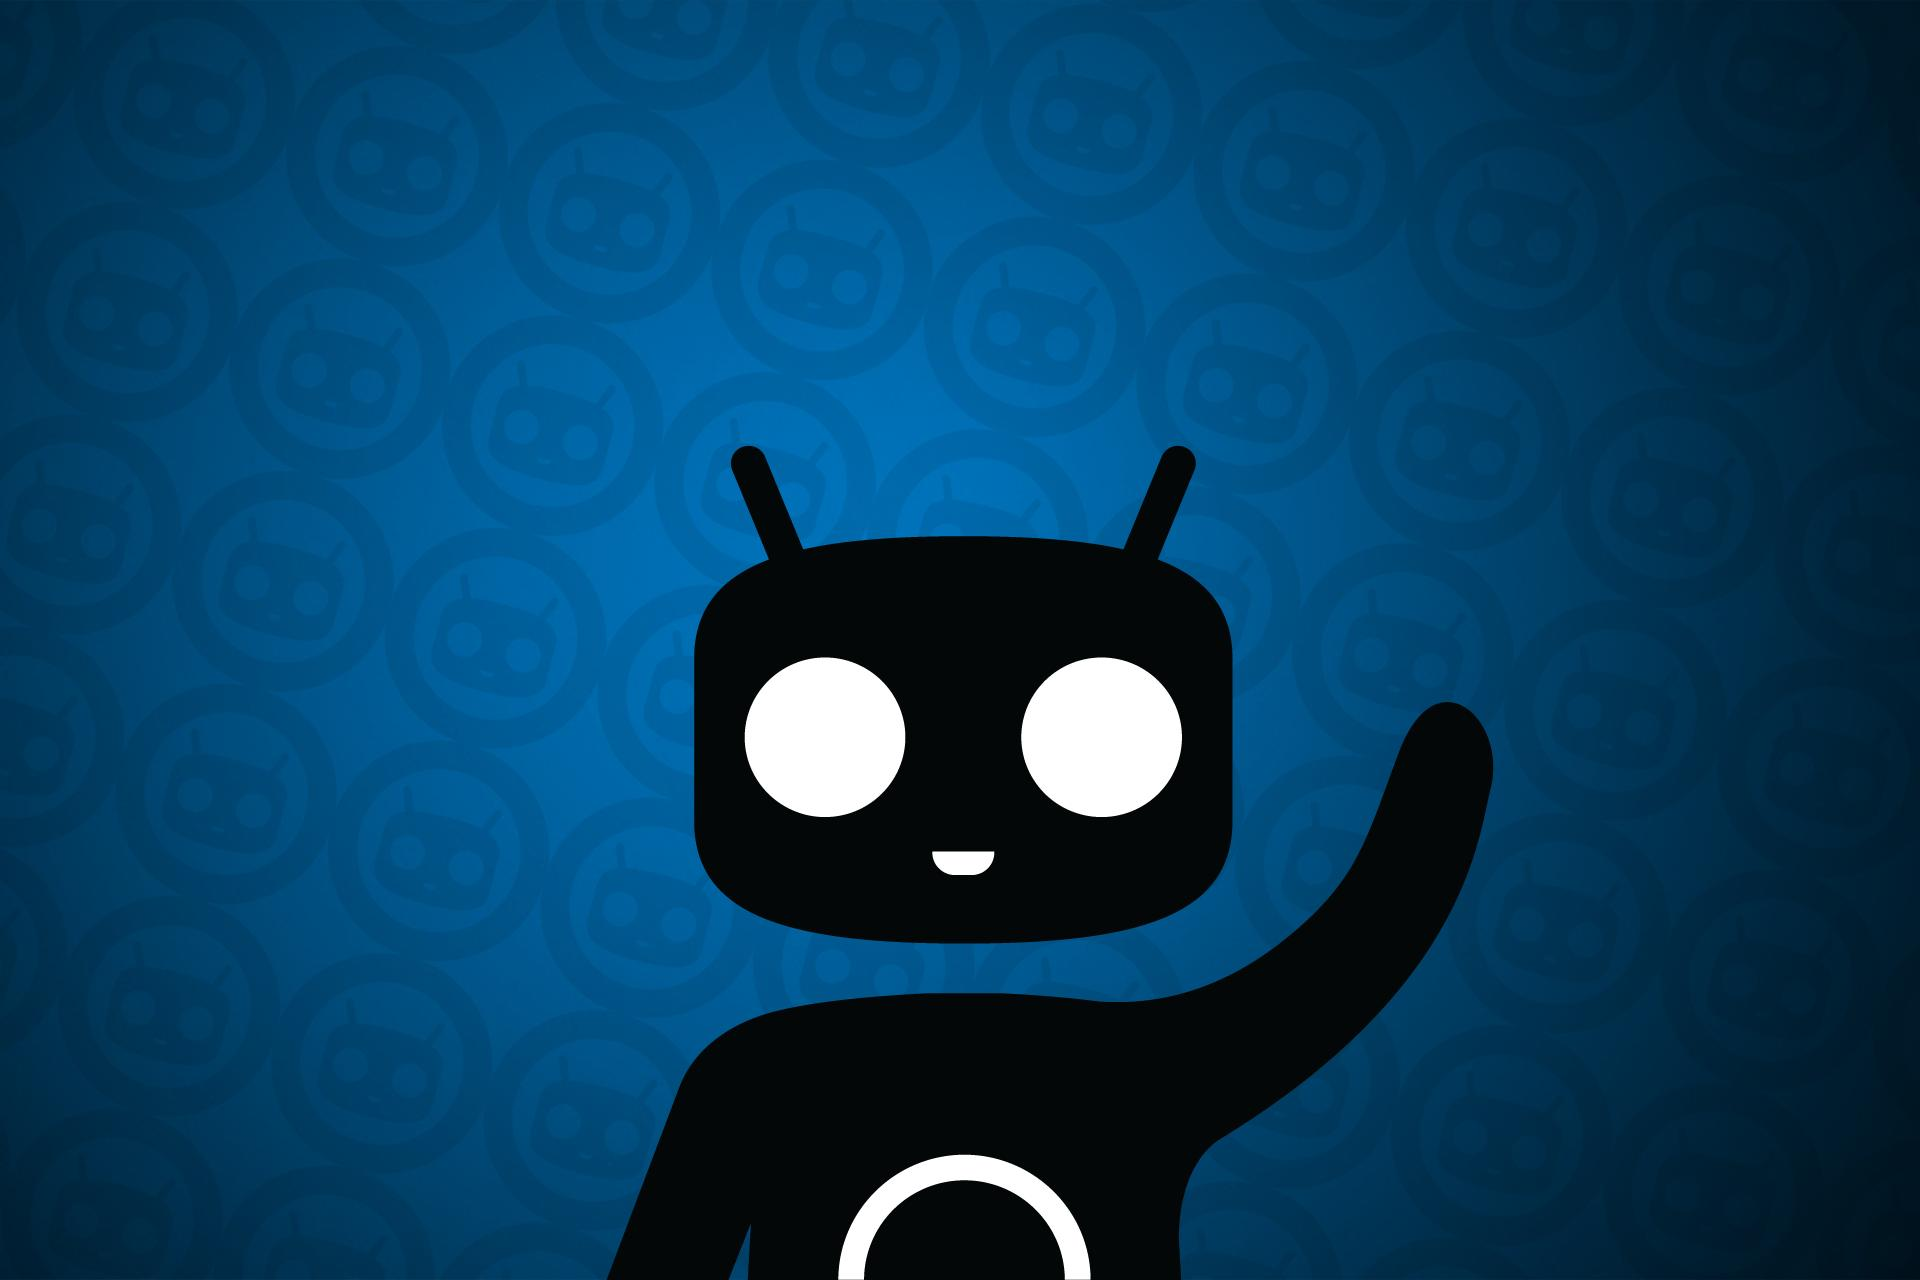 cyanogenmod - CyanogenMod Downloaded Over 10 Million Times